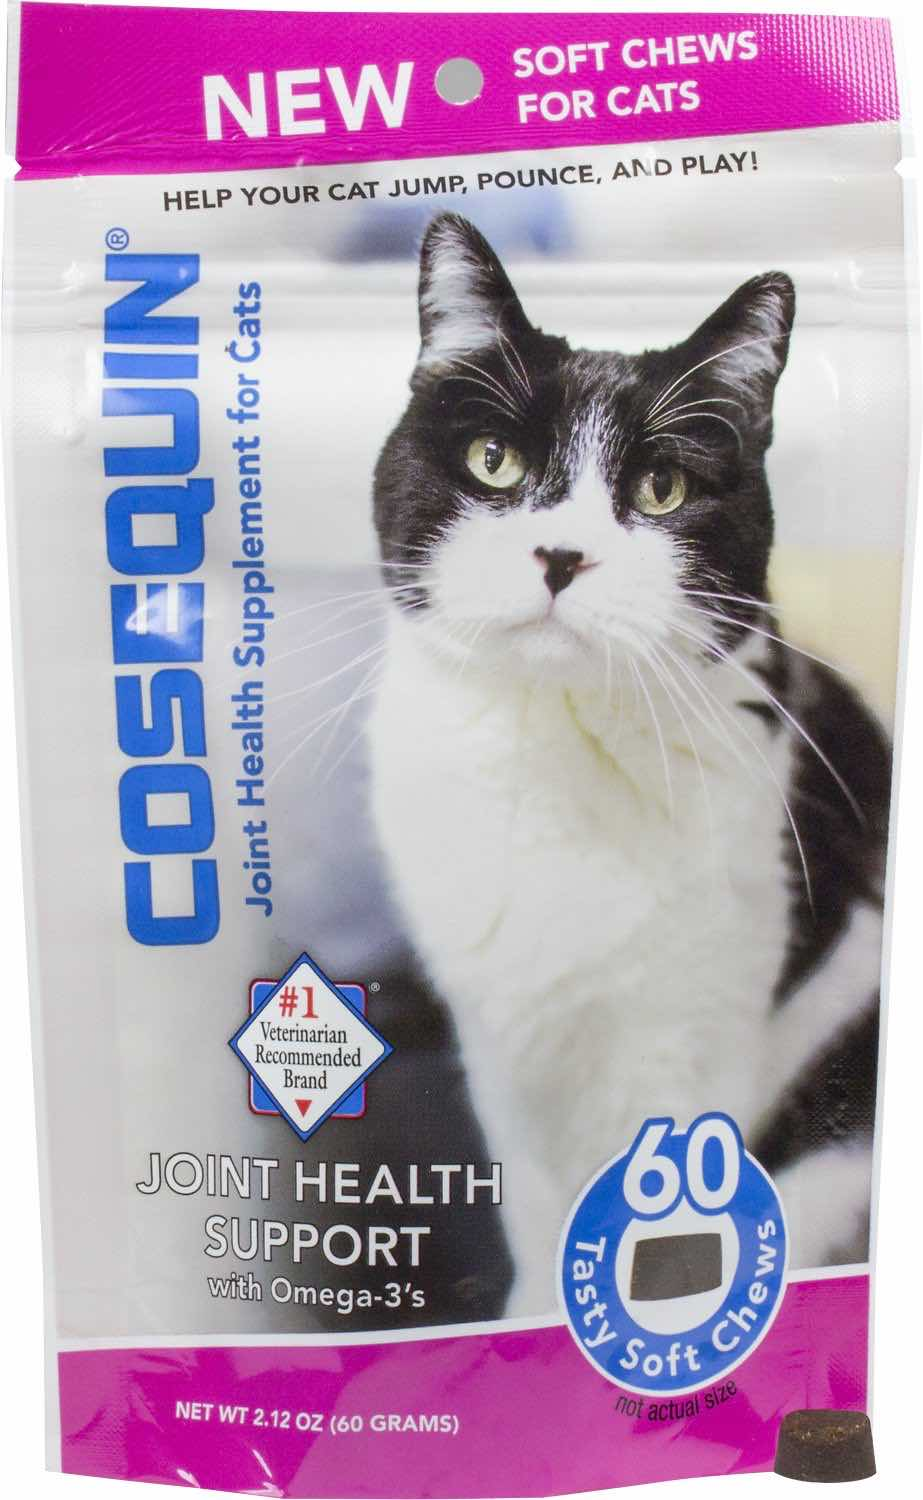 Cosequin for Cats Soft Chews 60 count 1